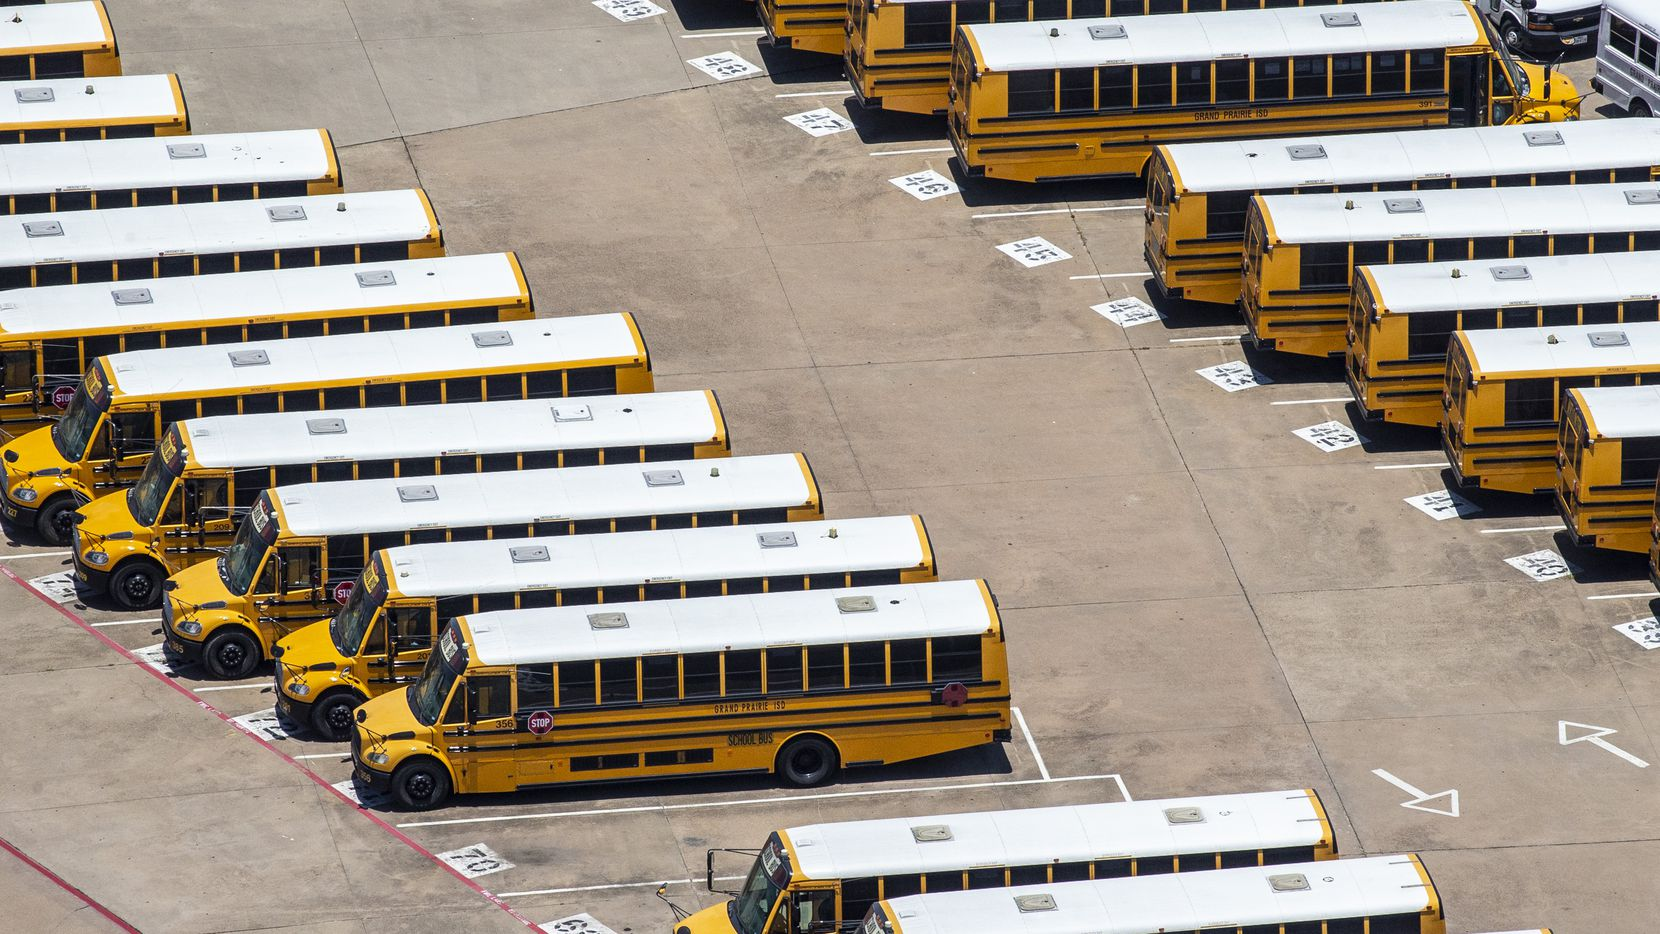 Buses are lined up at the Grand Prairie ISD Maintenance and Operations building in Grand Prairie, Texas, on Thursday, June 18, 2020. (Lynda M. Gonzalez/The Dallas Morning News)